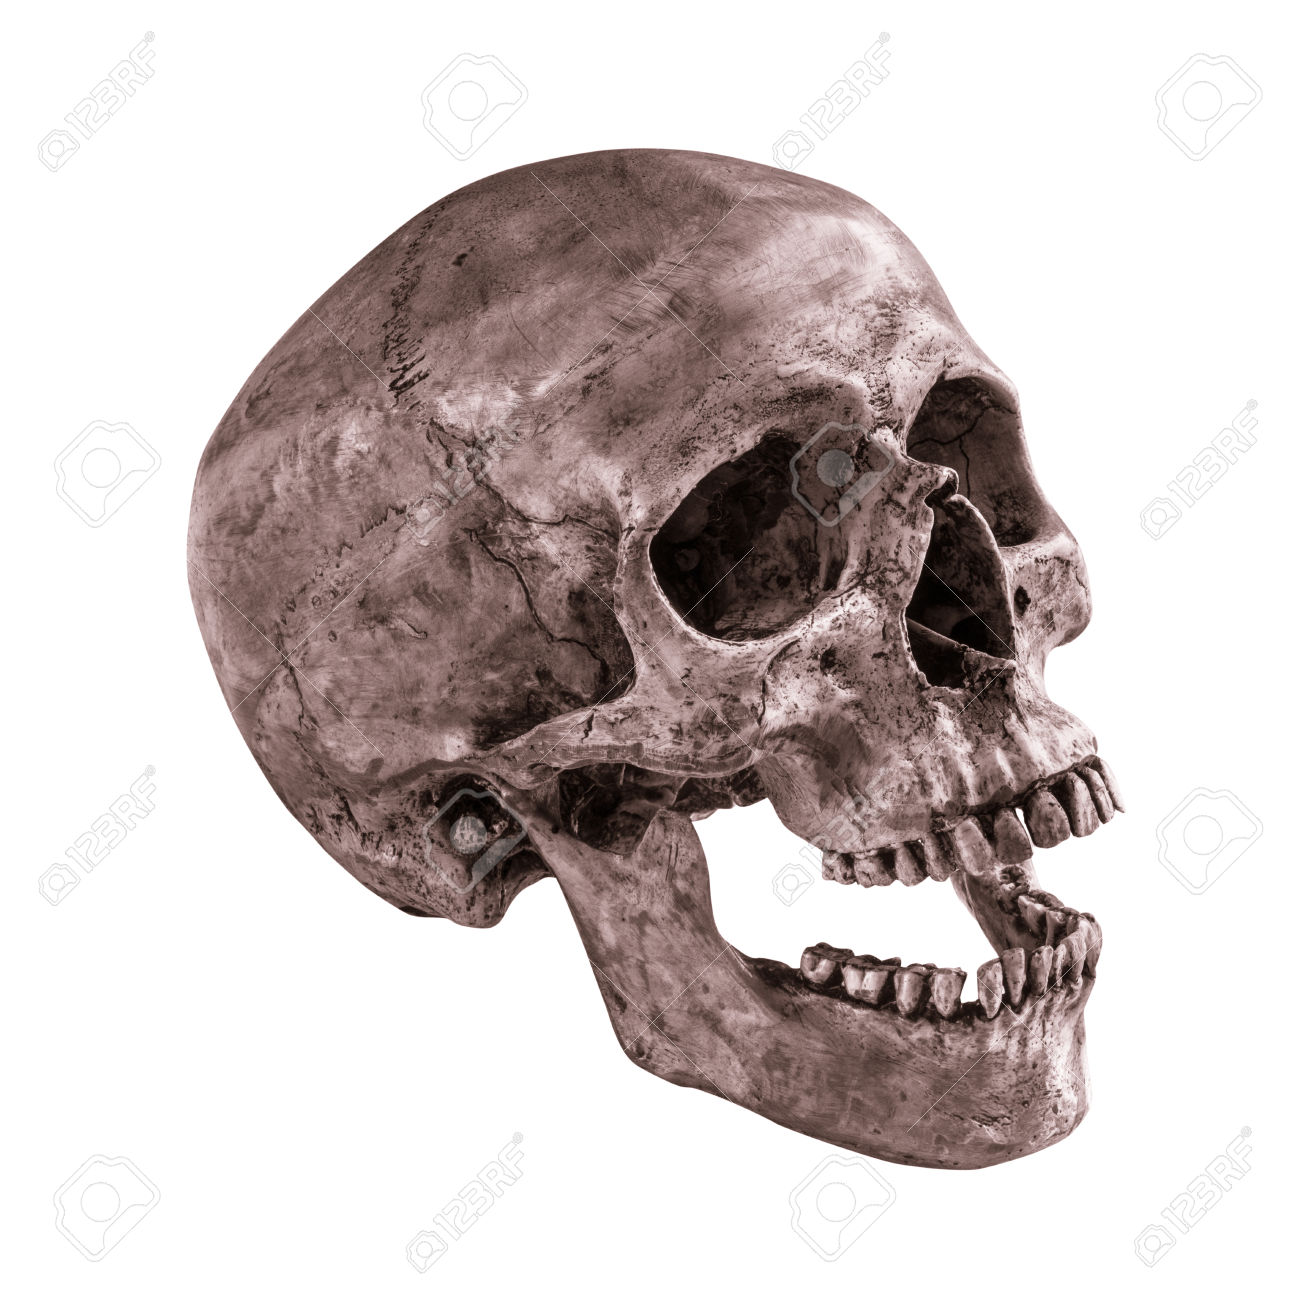 1300x1300 28216316 Sideview Of Human Skull Open Mouth On Isolated White